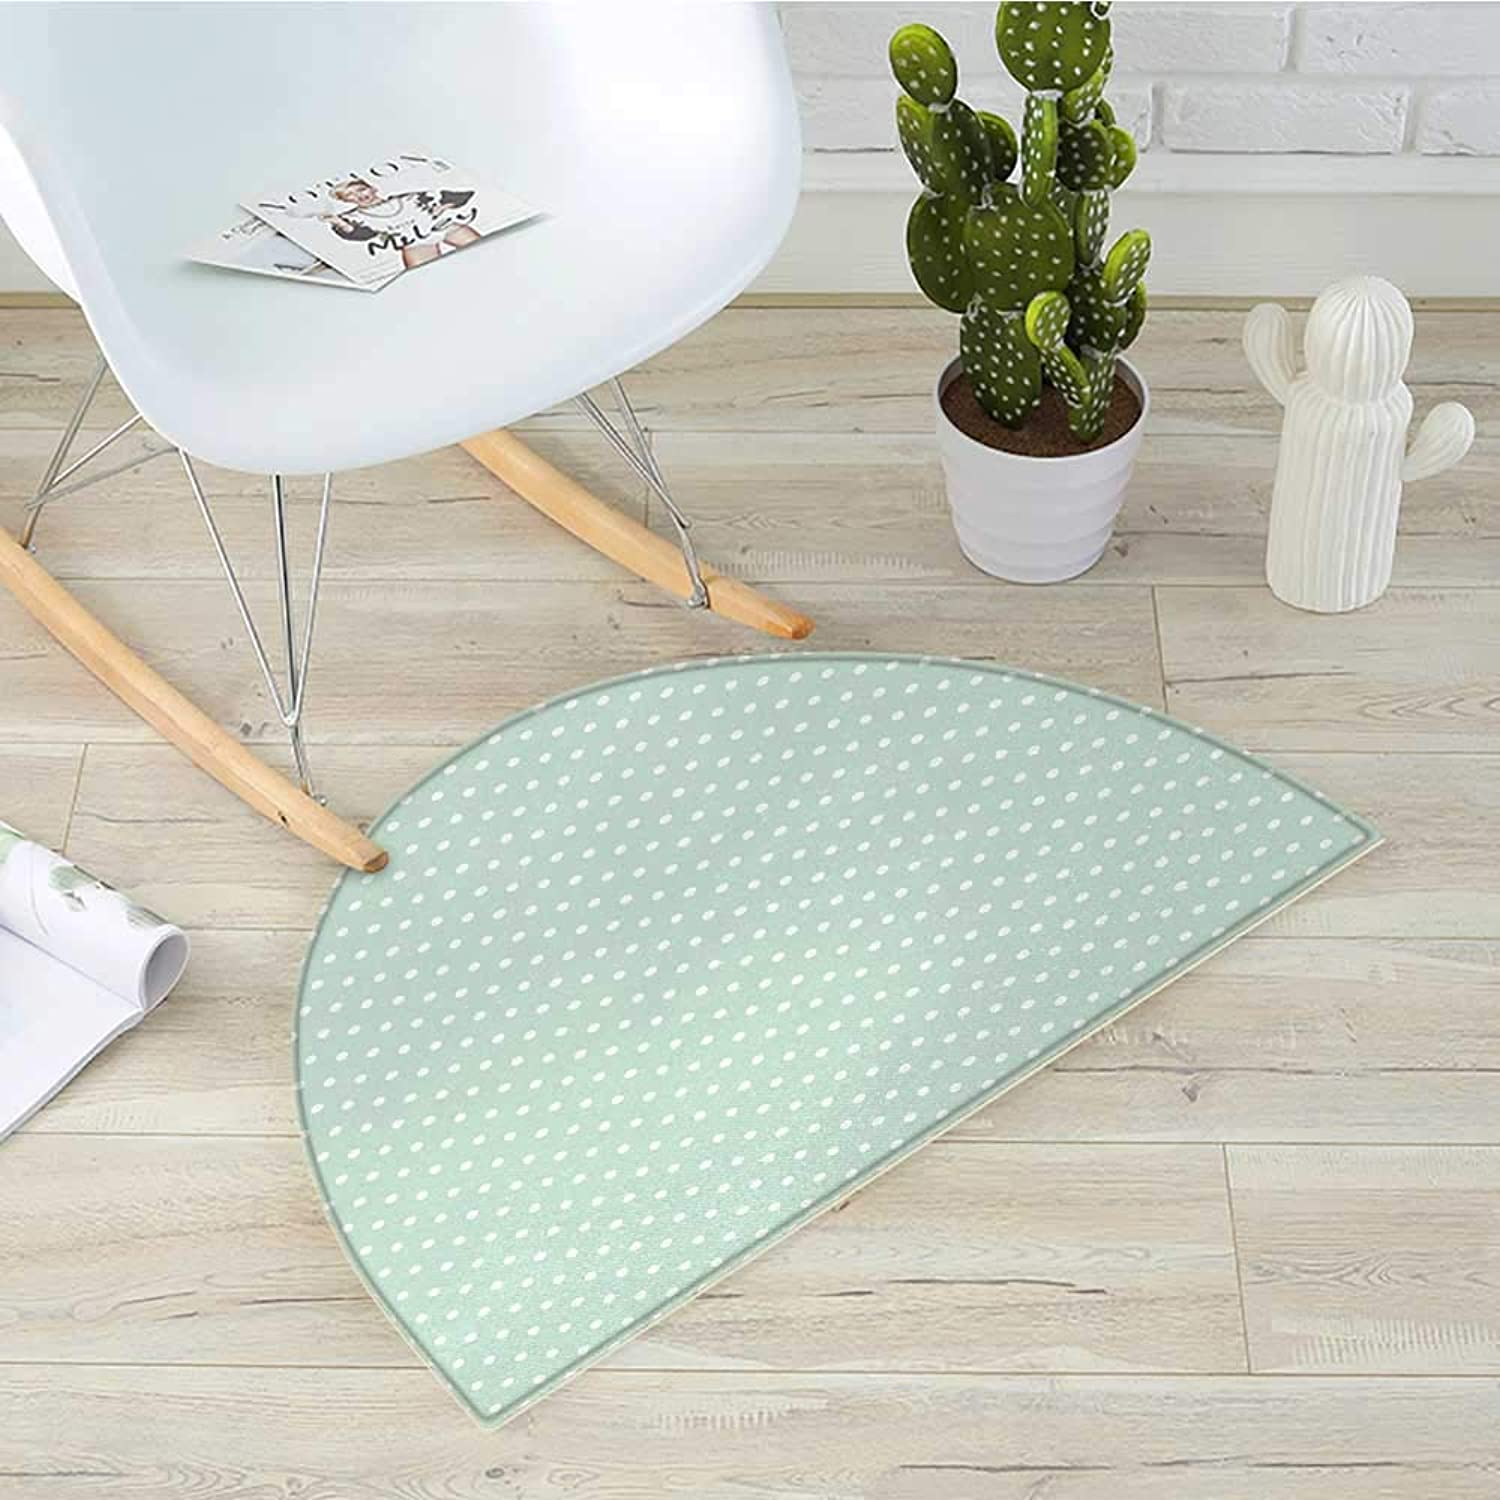 Green Semicircular CushionRetro Style Baby Nursery Themed Pattern with Little White Polka Dots Pastel Entry Door Mat H 35.4  xD 53.1  Mint Green White